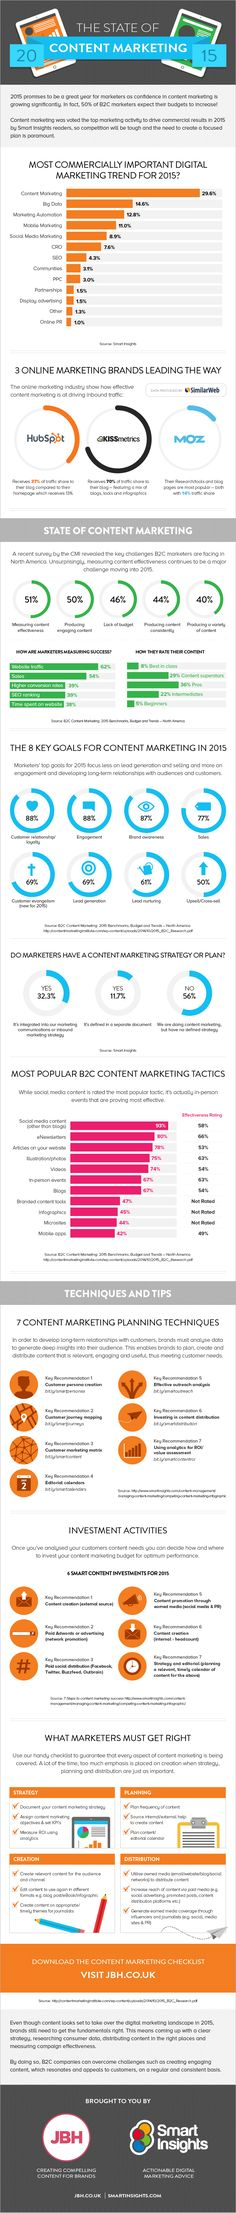 Content marketing strategic trends in 2015